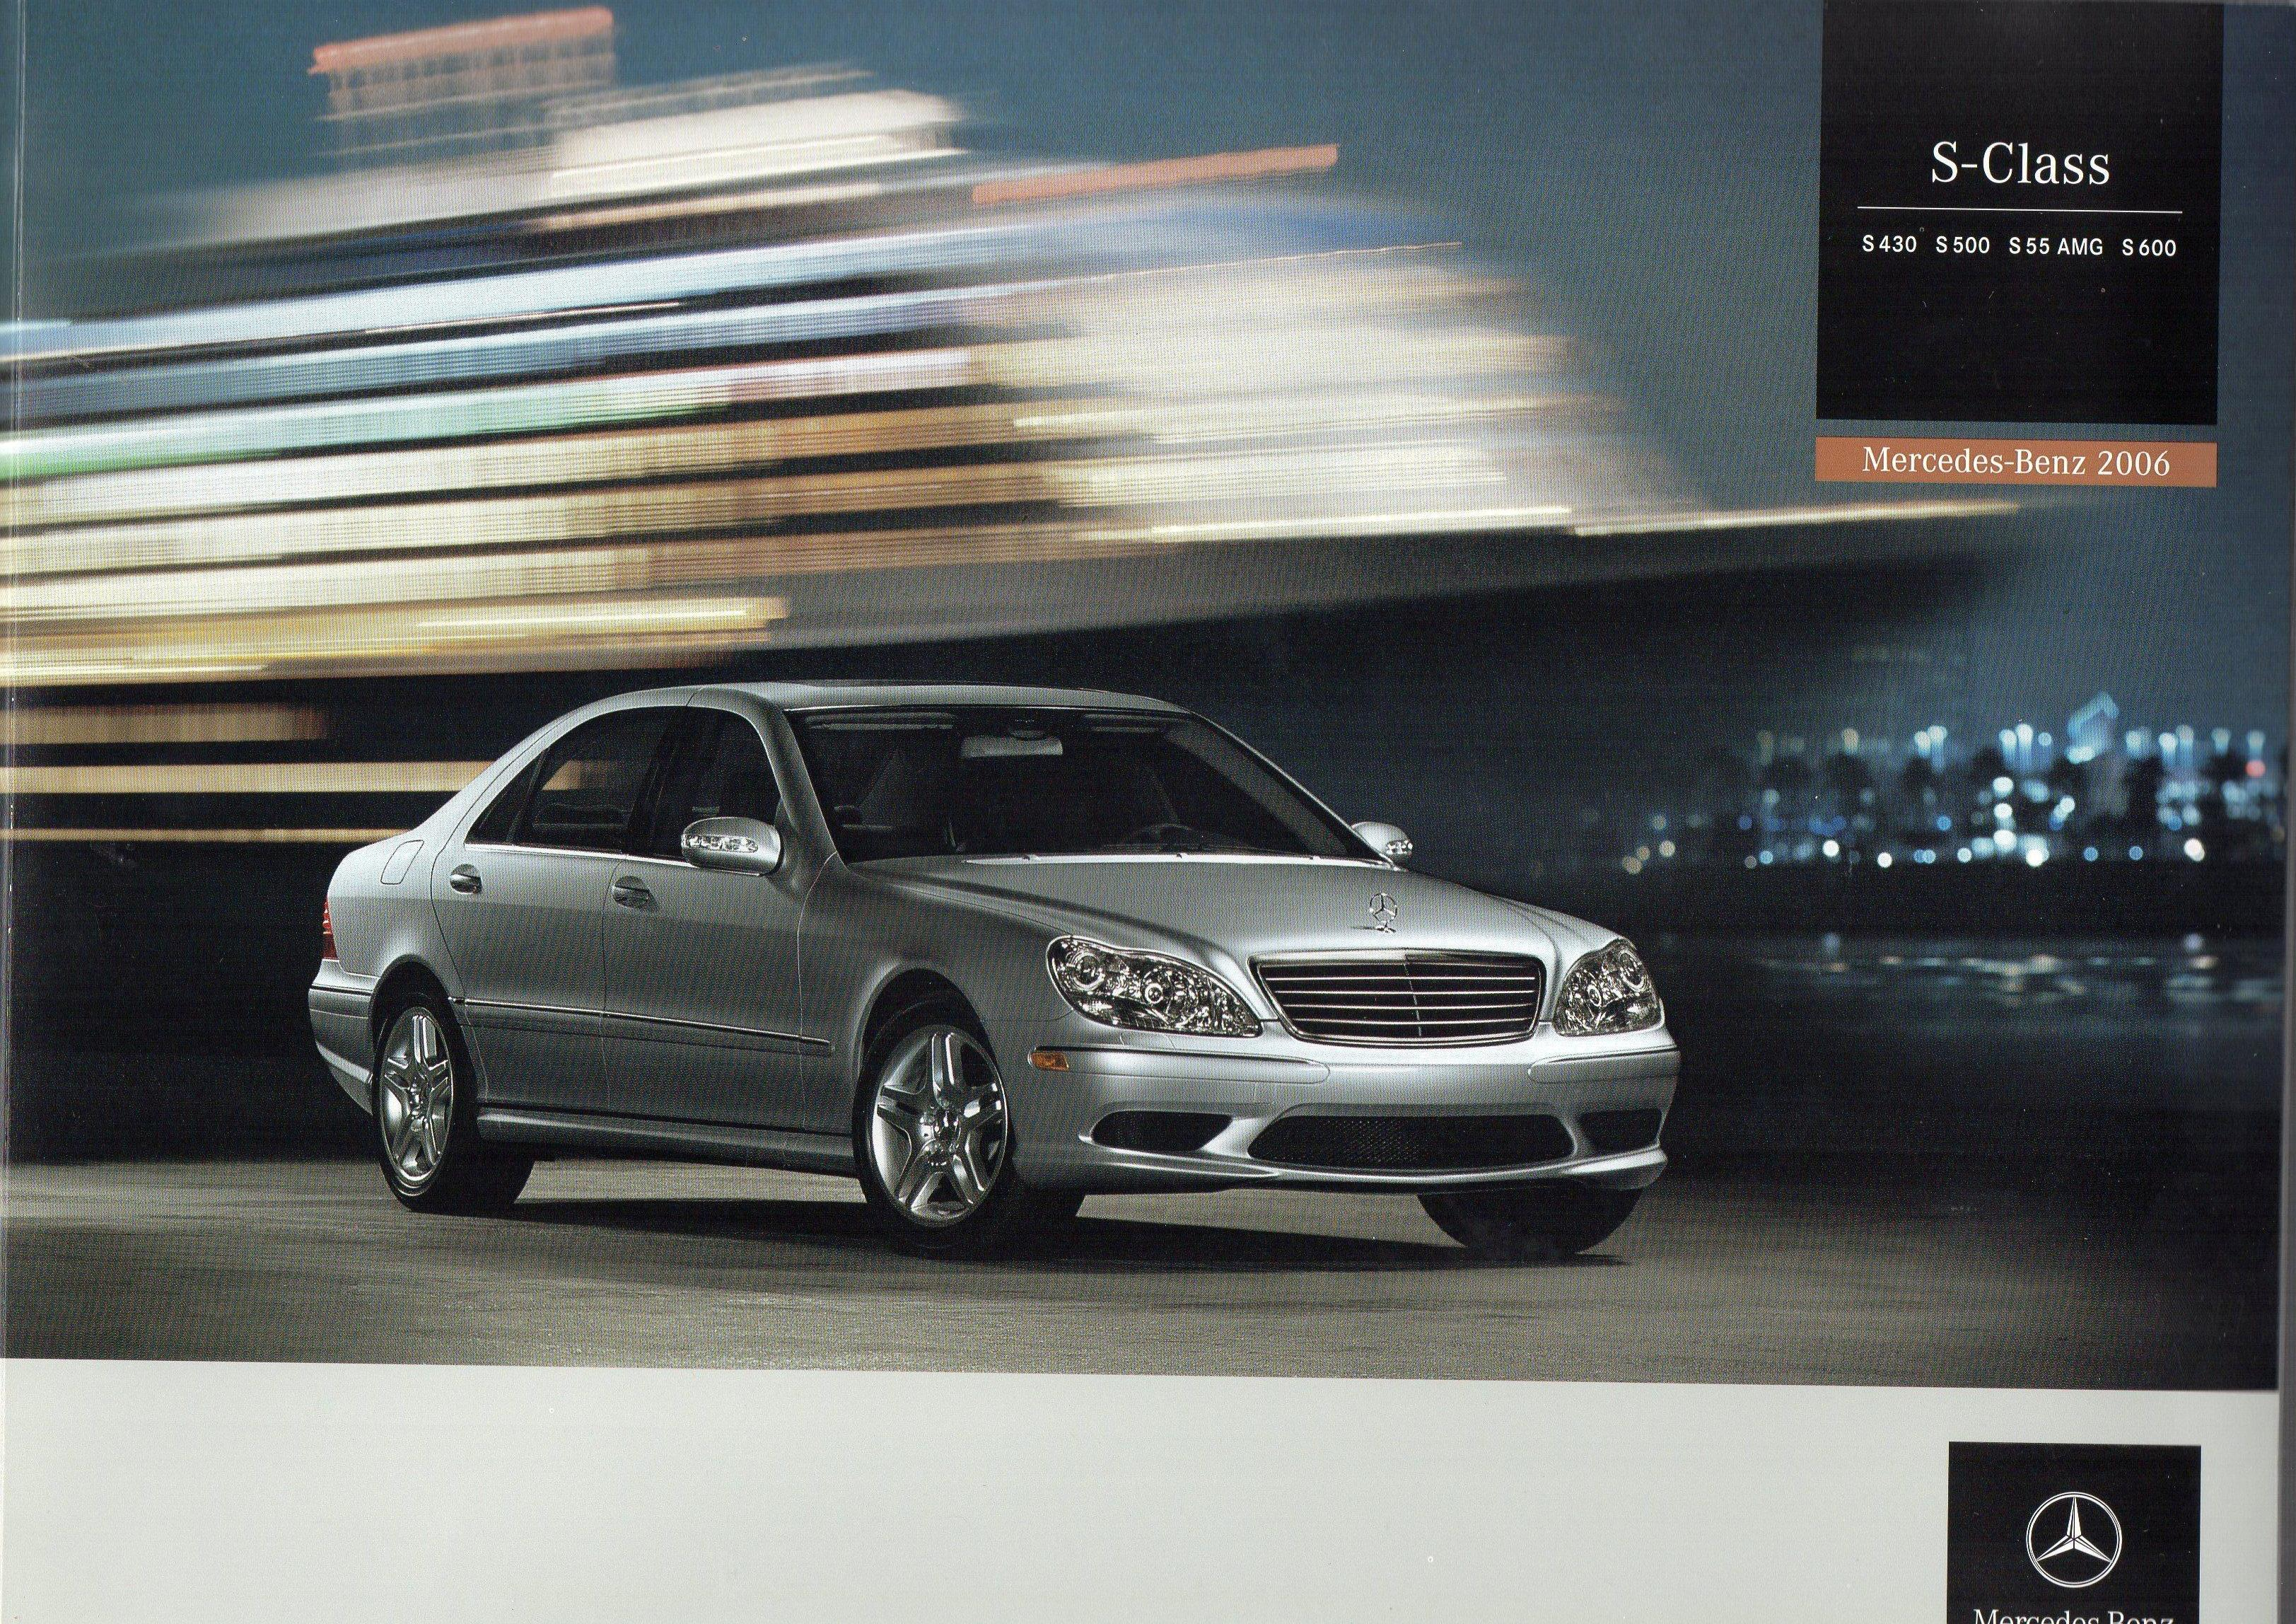 Mercedes benz 2006 sl s class brochures for sale for Mercedes benz home page